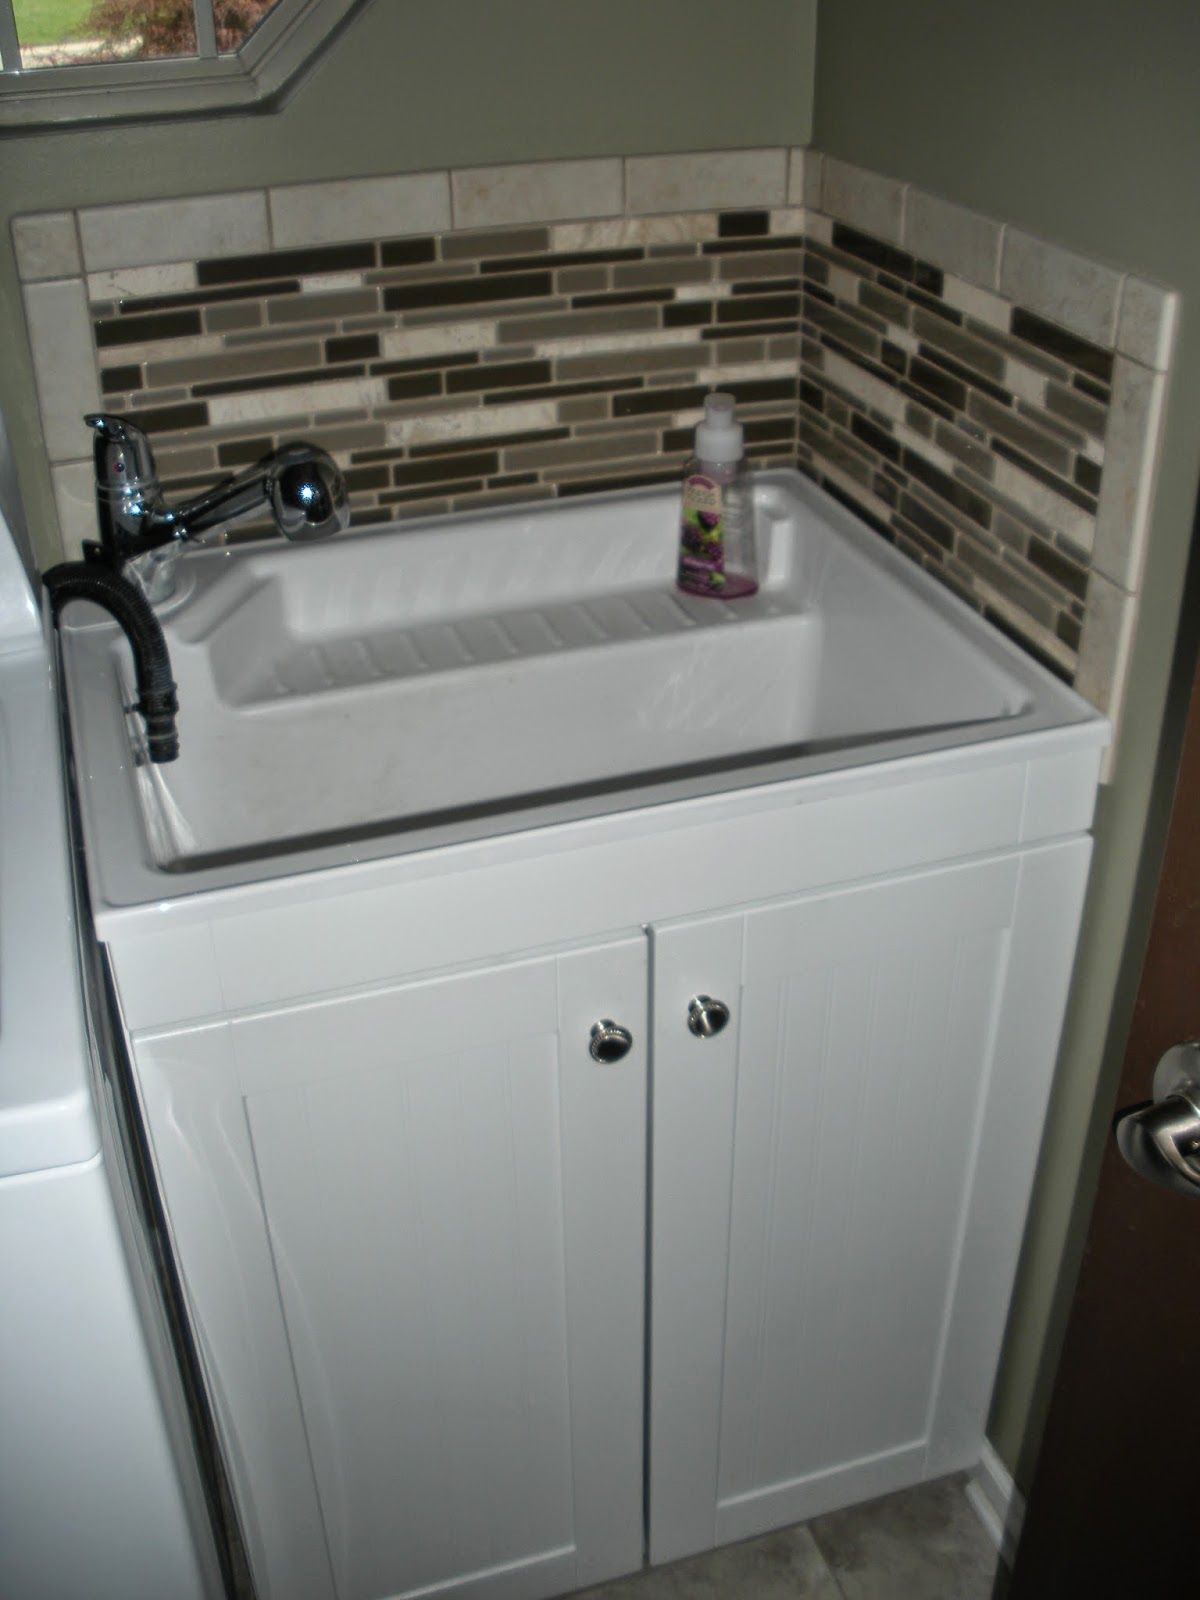 laundry room sink laundry room design laundry rooms laundry tubs wash